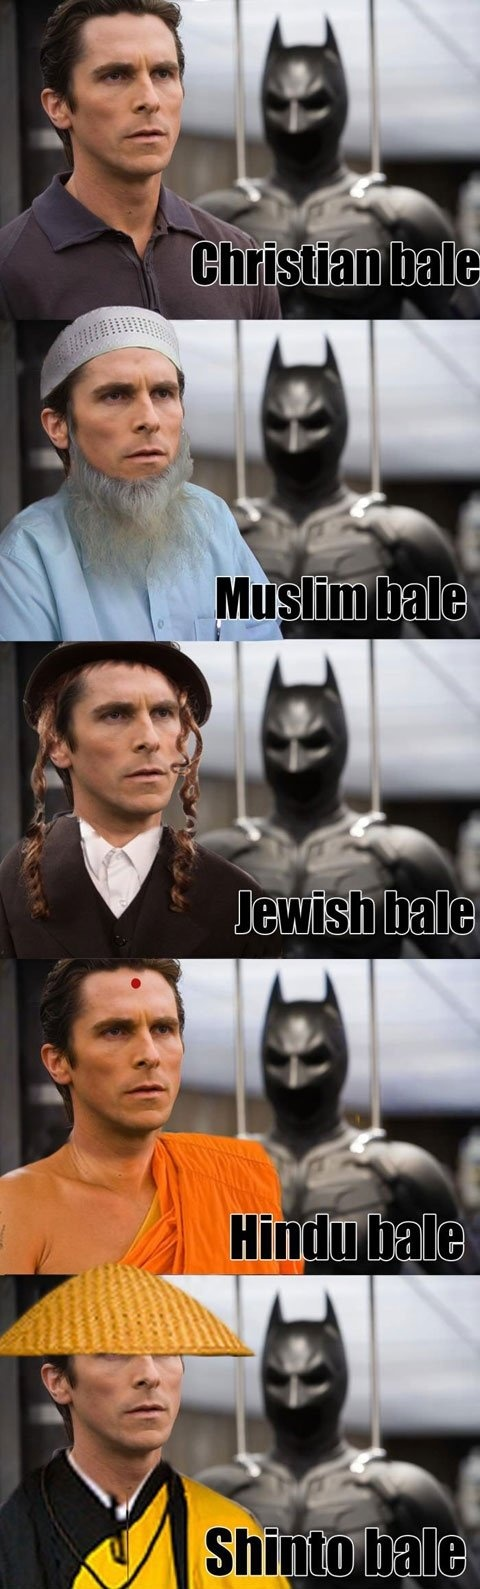 Christian Bale... Haha I don't know why this is funny but it is.... especially the last one.  His hat!!